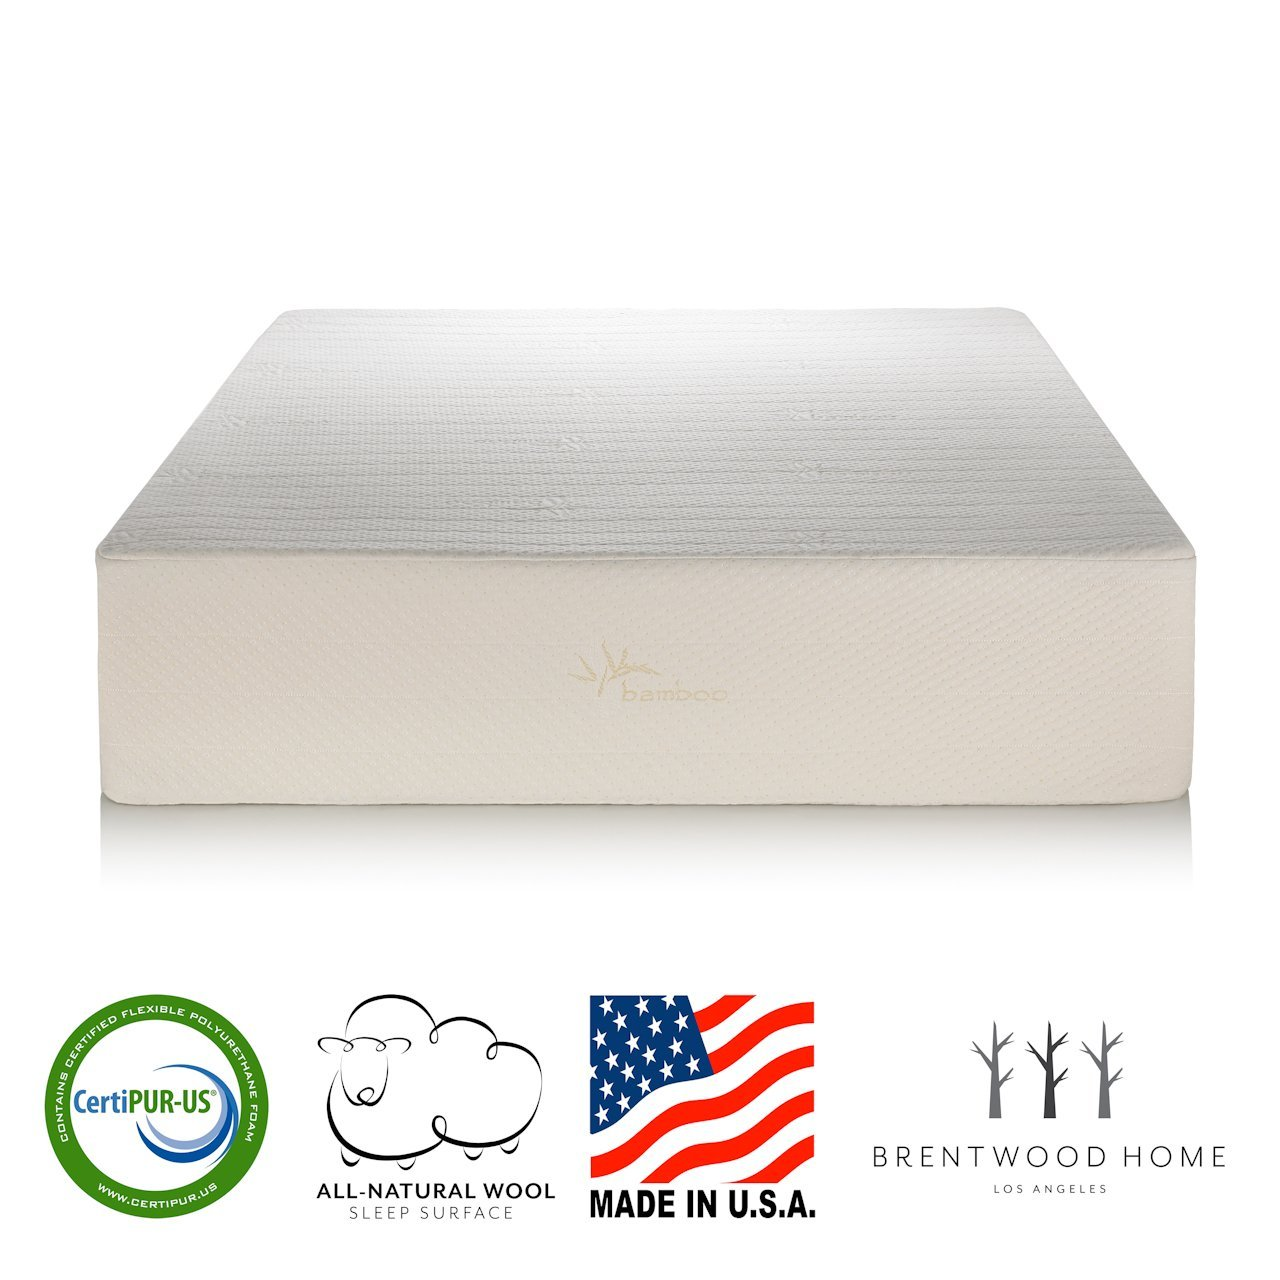 Top 10 Best Hybrid Mattress Reviews 2020 Buying Guide